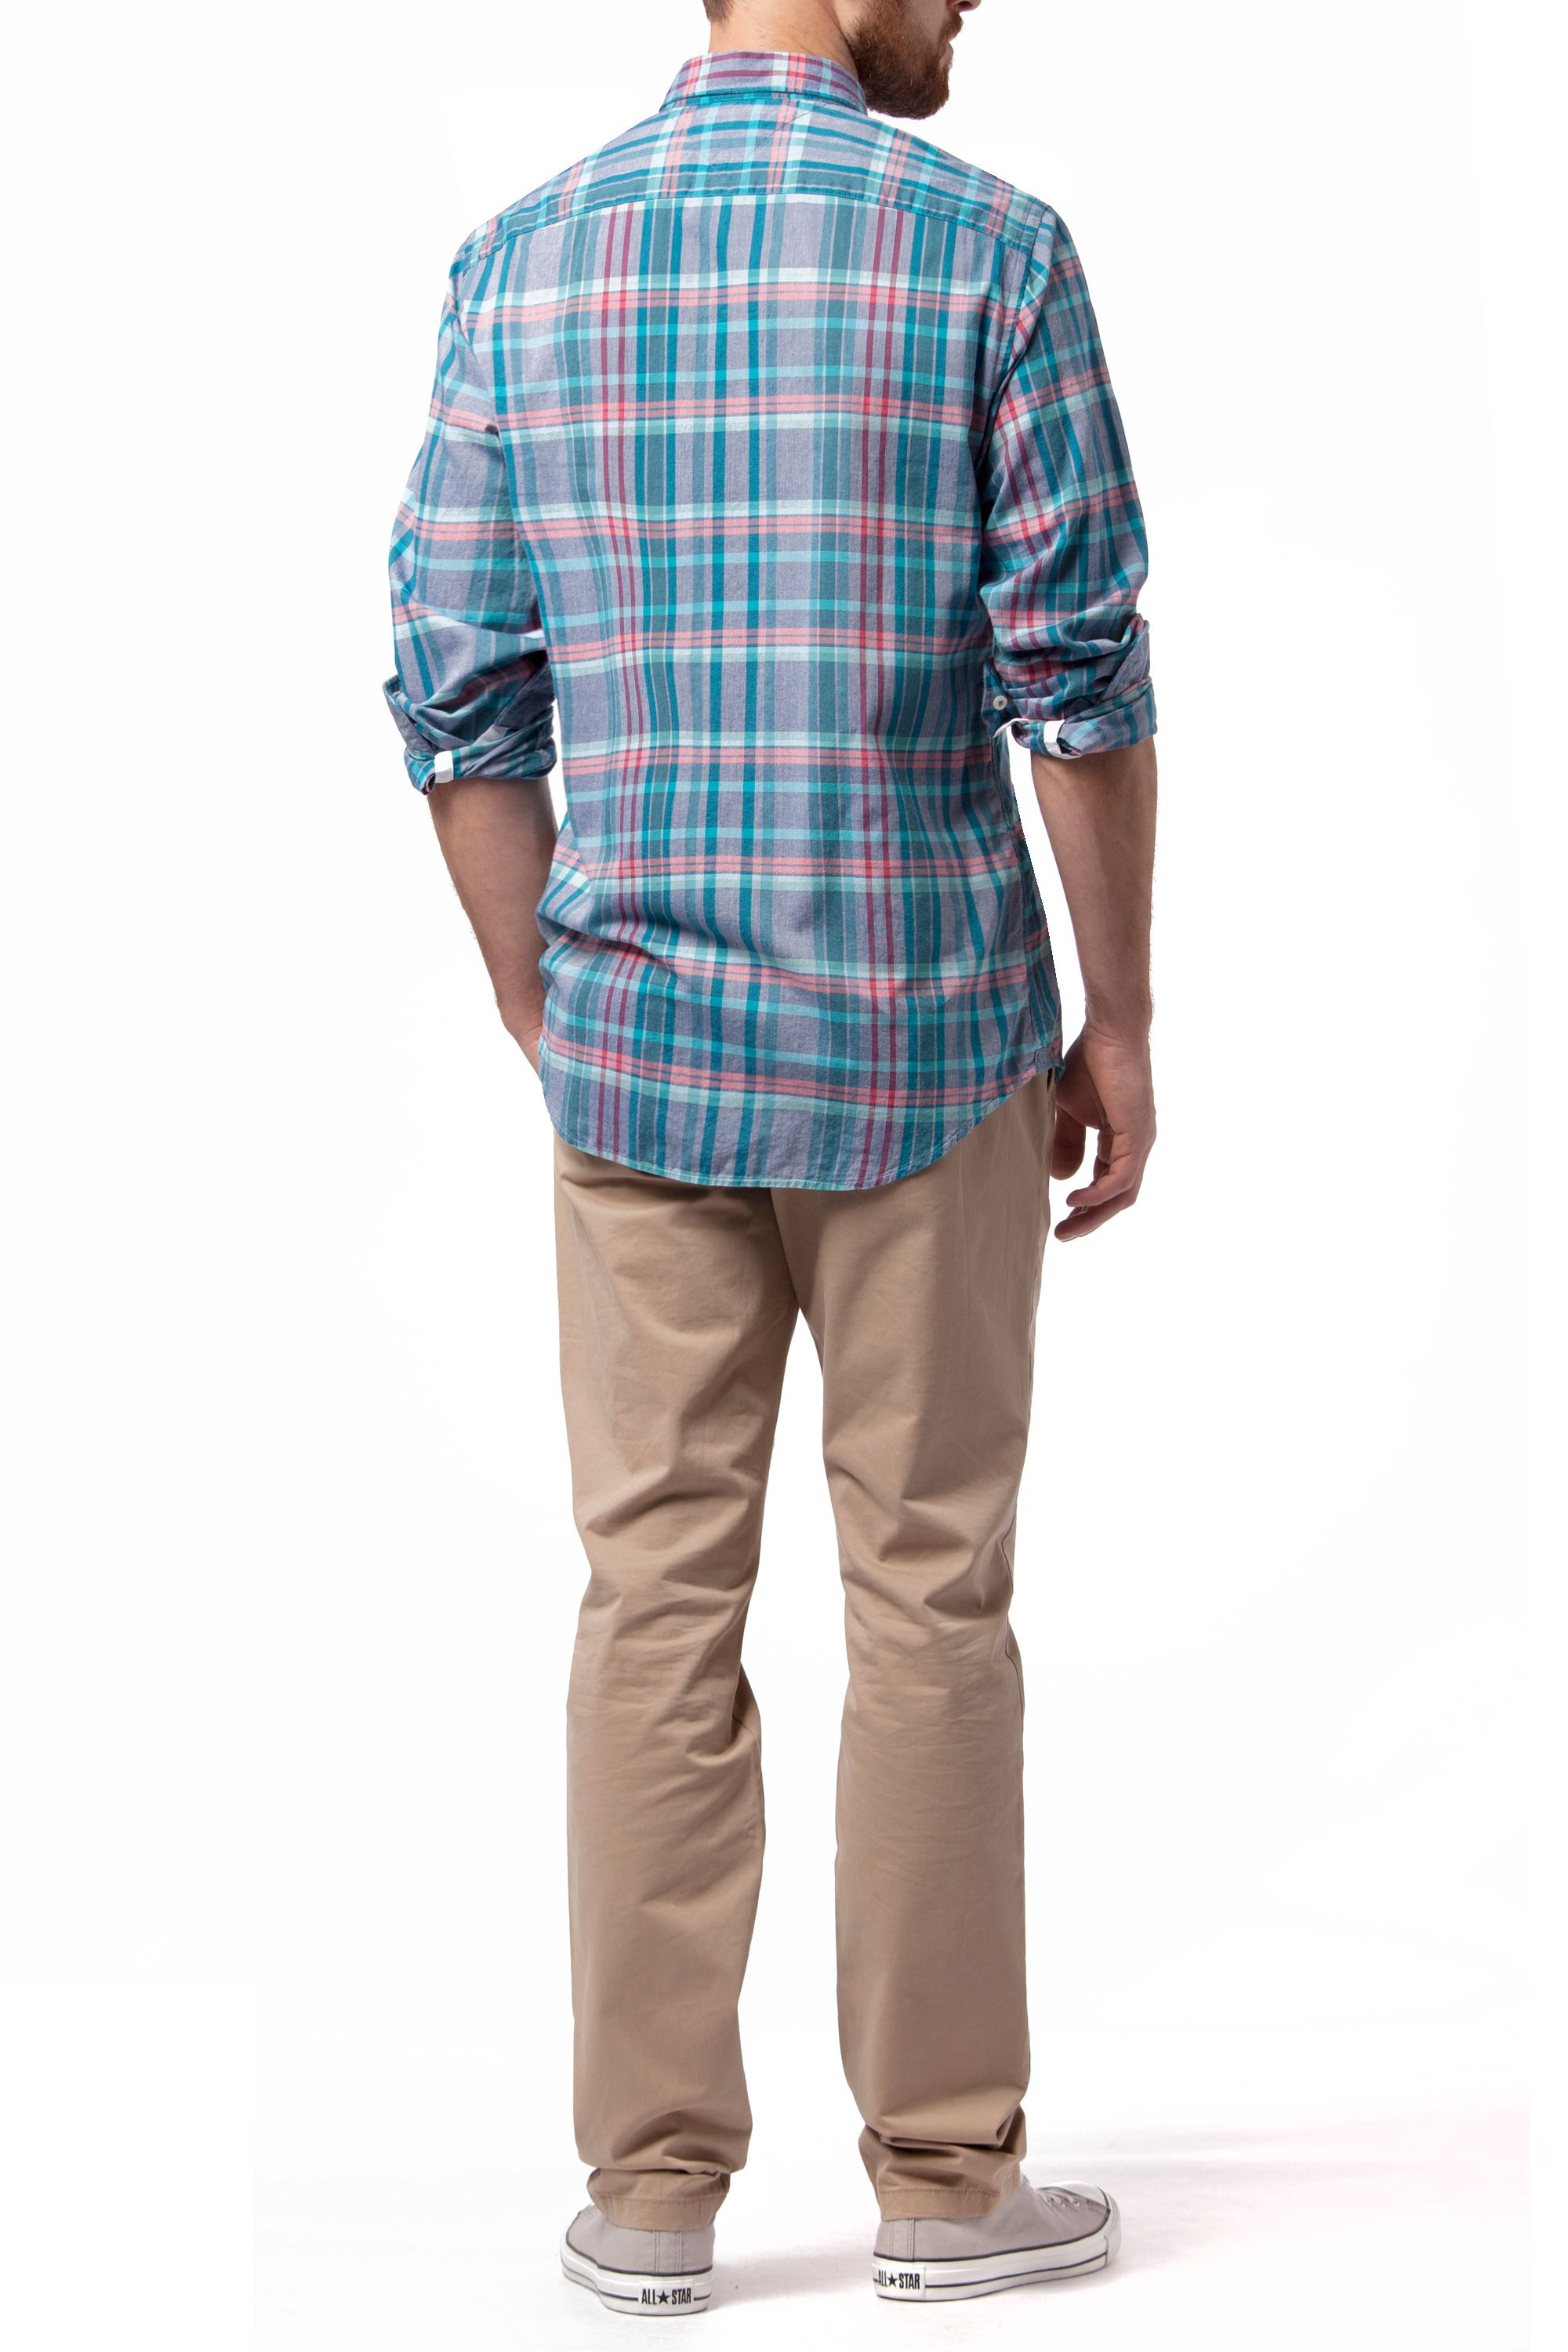 Tommy Hilfiger Emery Check Classic Fit Shirt In Blue For